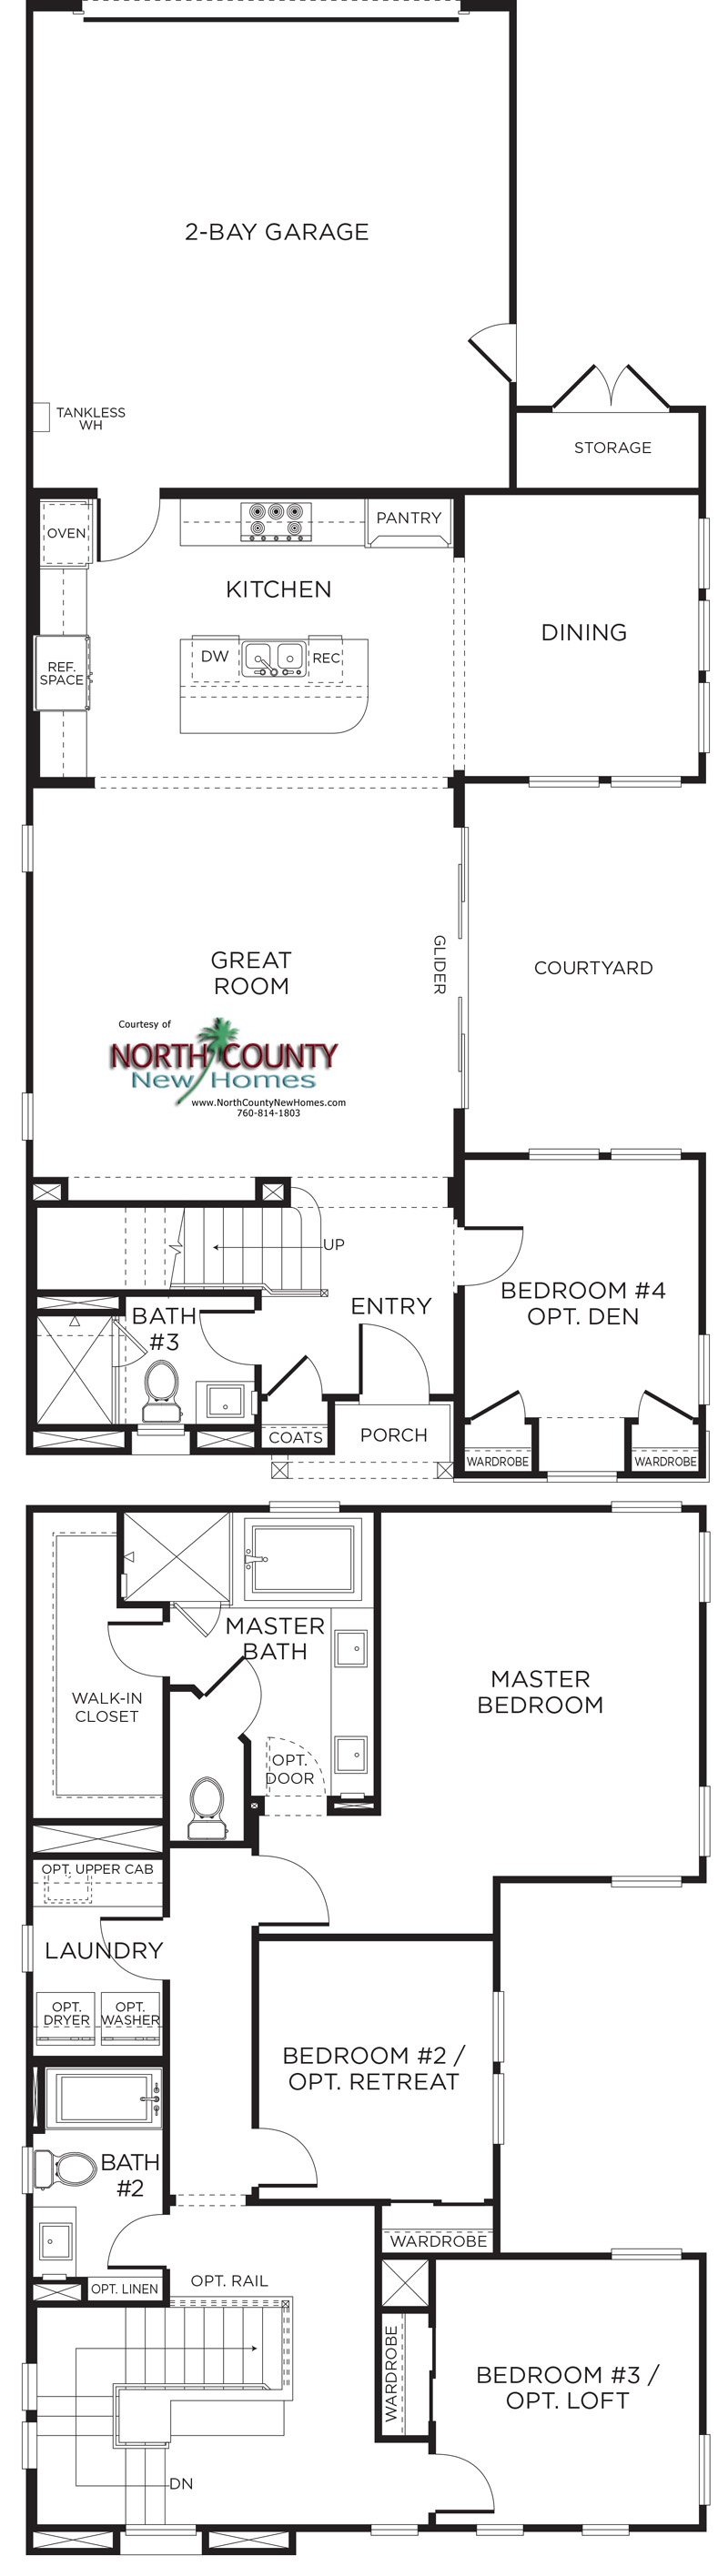 CANTERRA Floor Plans New Pacific Highlands Ranch Homes on ranch homes with windows, split level homes with floor plans, ranch homes with landscaping, craftsman homes with floor plans,